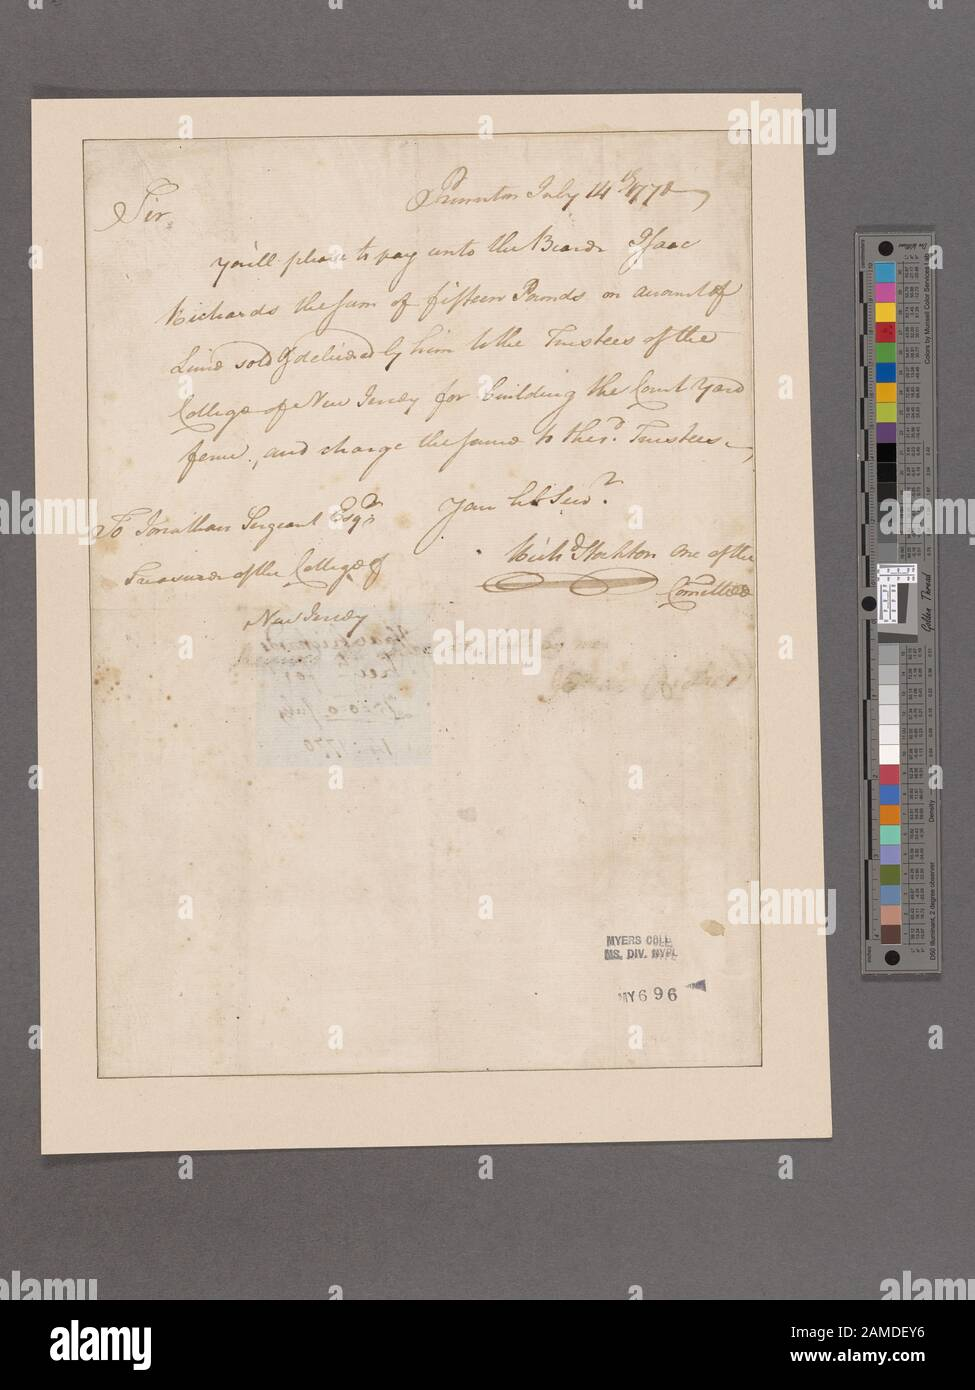 Stockton, Richard Princeton To Jonathan Sergeant  Digitization was made possible by a lead gift from The Polonsky Foundation.; Stockton, Richard. Princeton. To Jonathan Sergeant Stock Photo